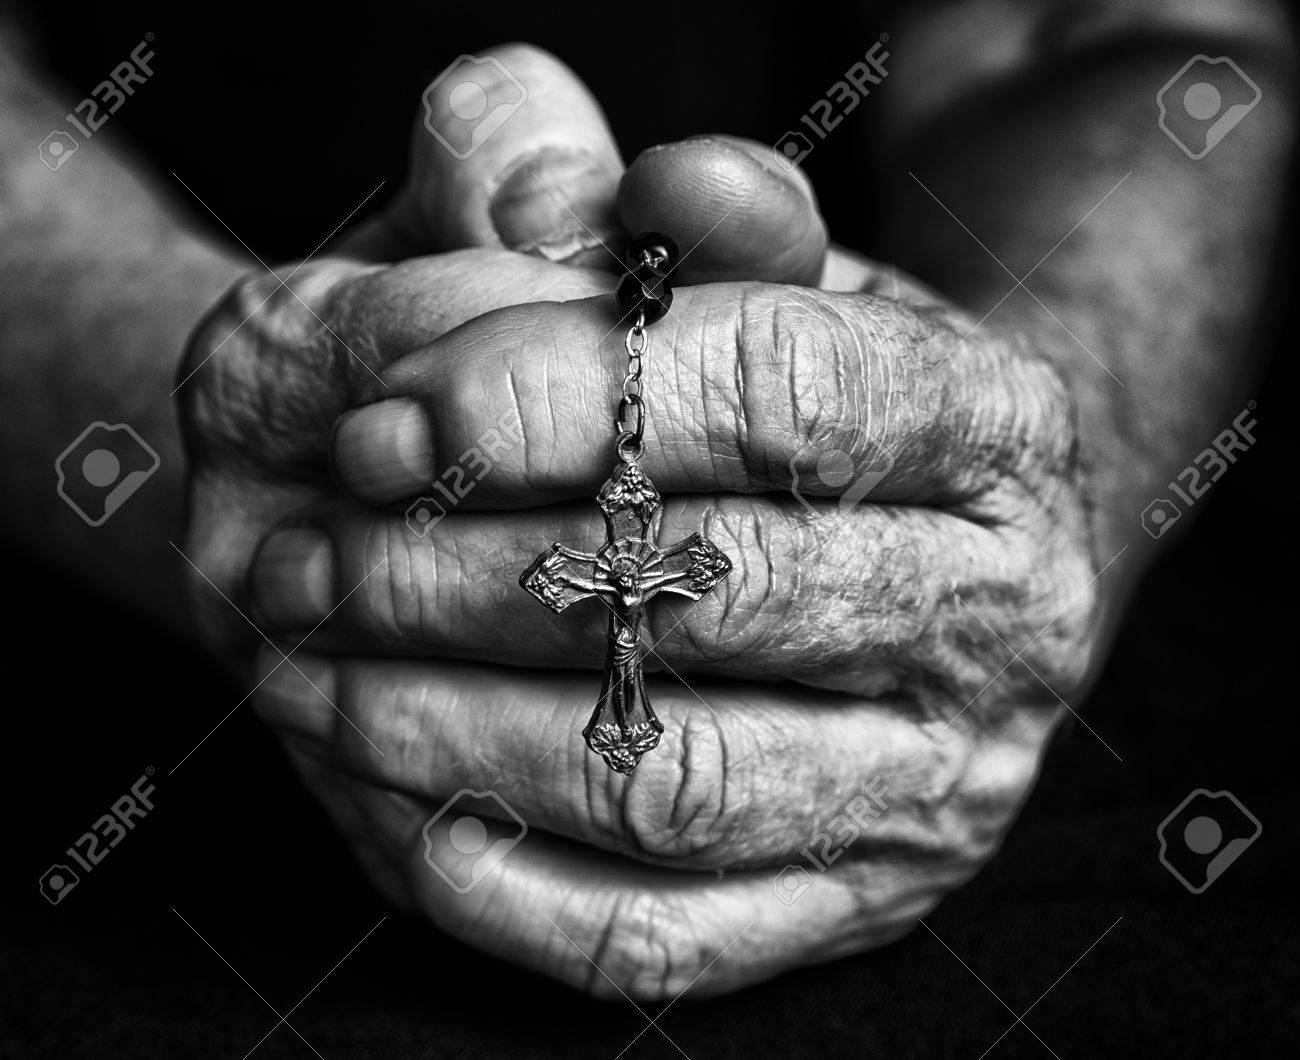 Rosary in old closed hands together black and white fotography stock photo 72969393